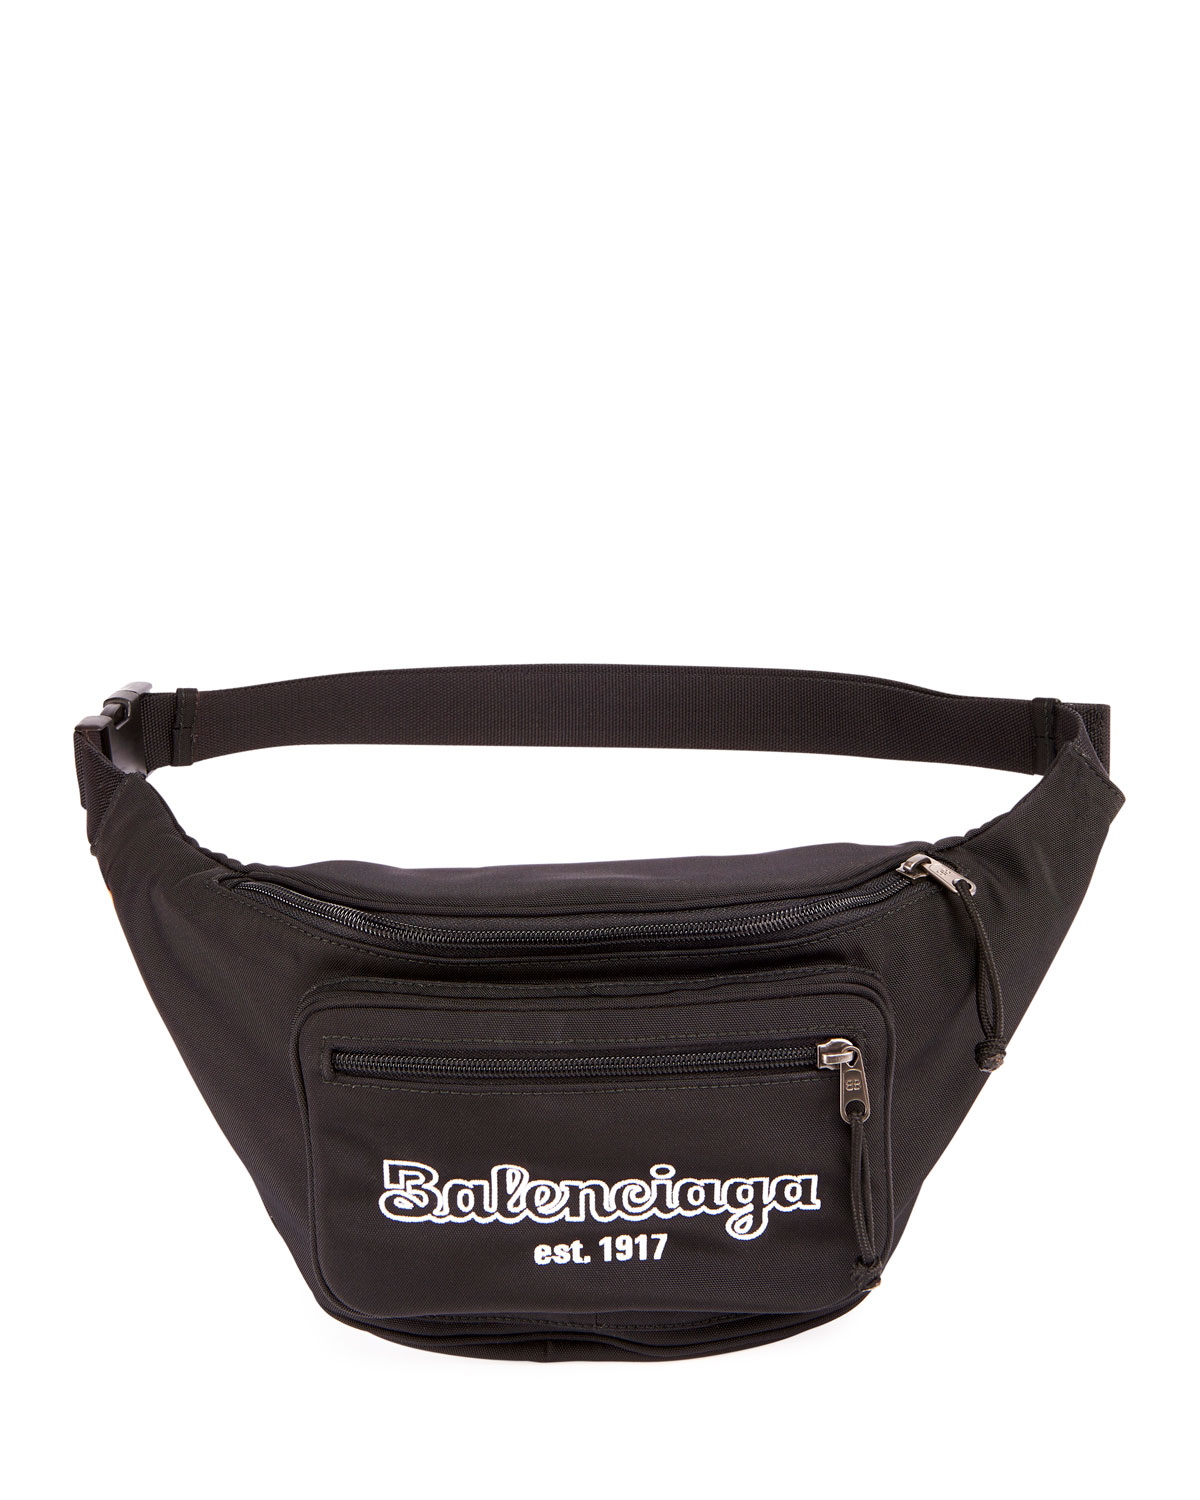 luxury fashion 100% top quality a few days away Men's Explorer Belt Bag/Fanny Pack